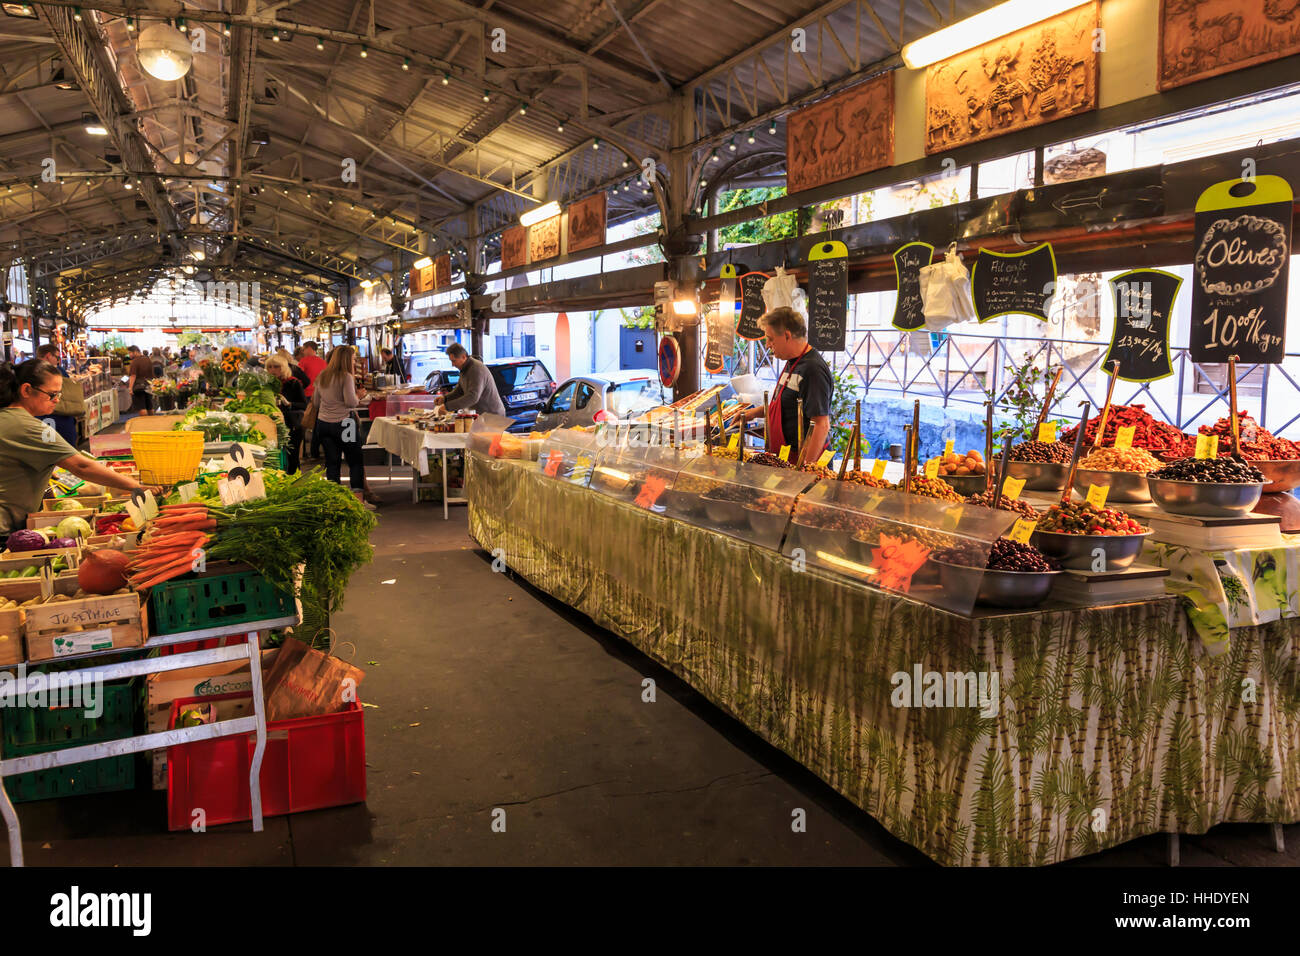 Marche Provencal, morning market, Vieil Antibes, French Riviera, Cote d'Azur, Provence, France - Stock Image